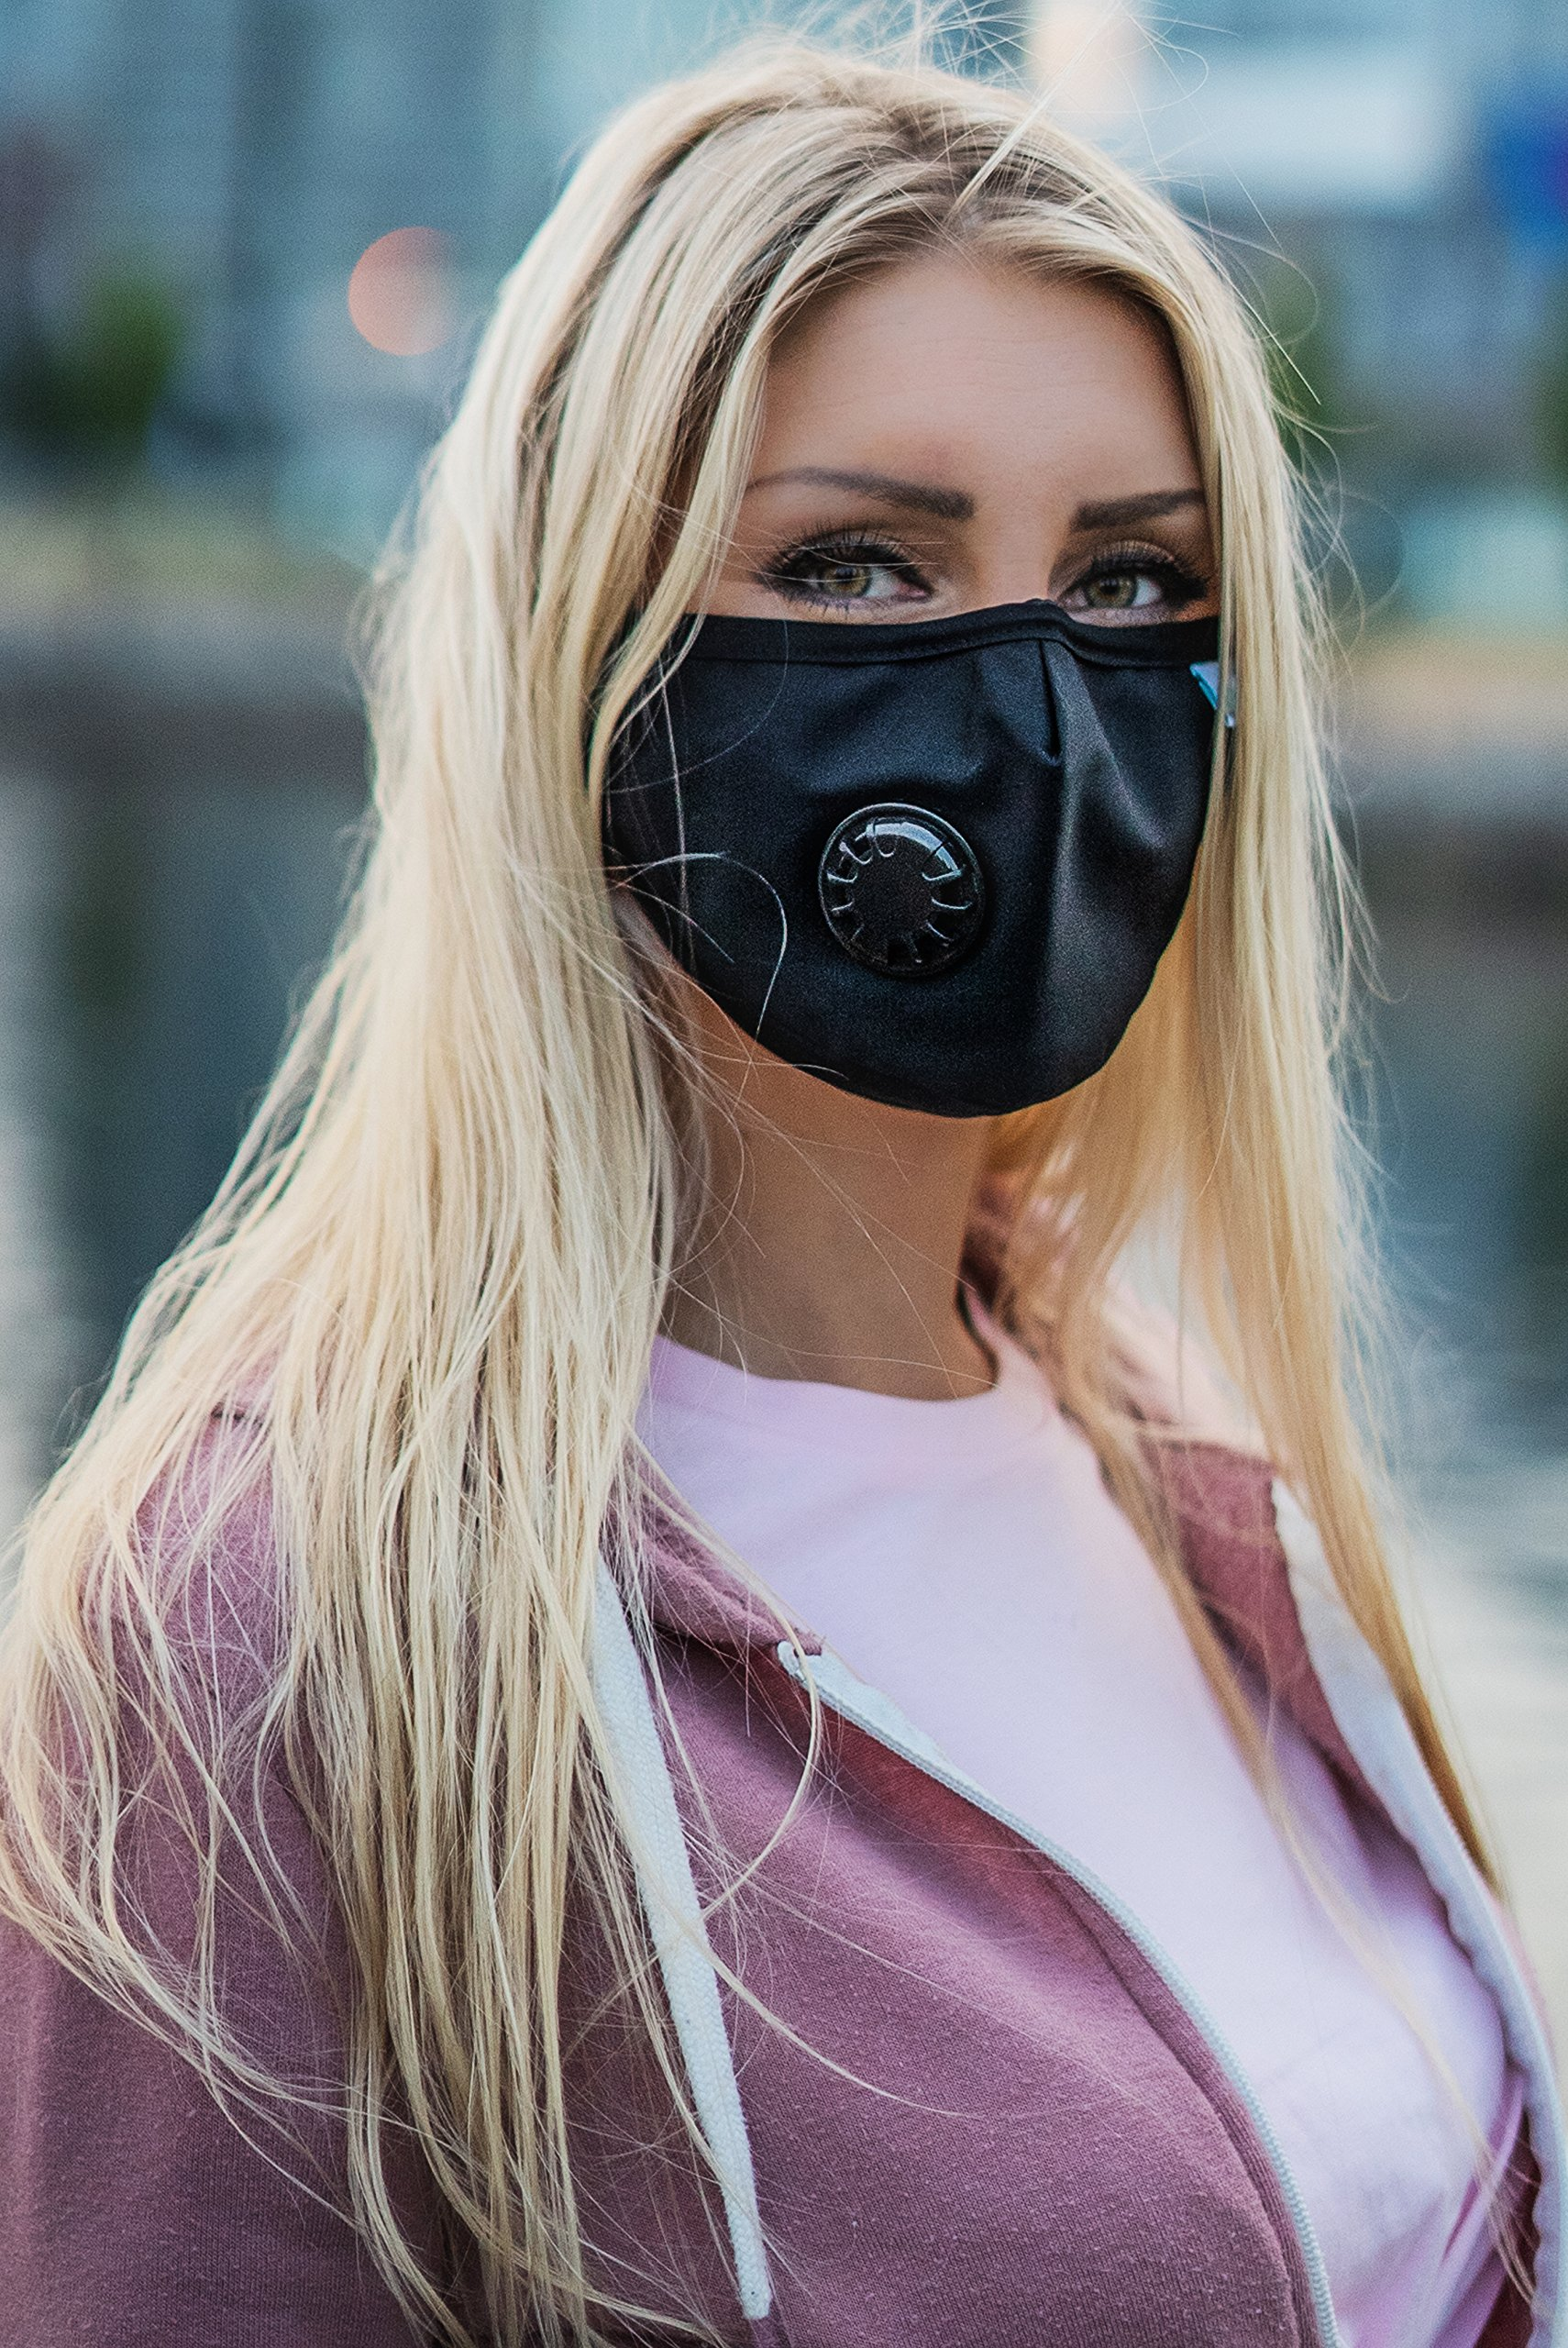 Easy Breathe Pollution Mask Ultra Soft Cotton Adjustable & Reusable With Four N99 Mask Replacement Filters | Anti Pollution N99 Filter Respirator Mouth & Face Mask For Men & Women by Keklle (Image #4)